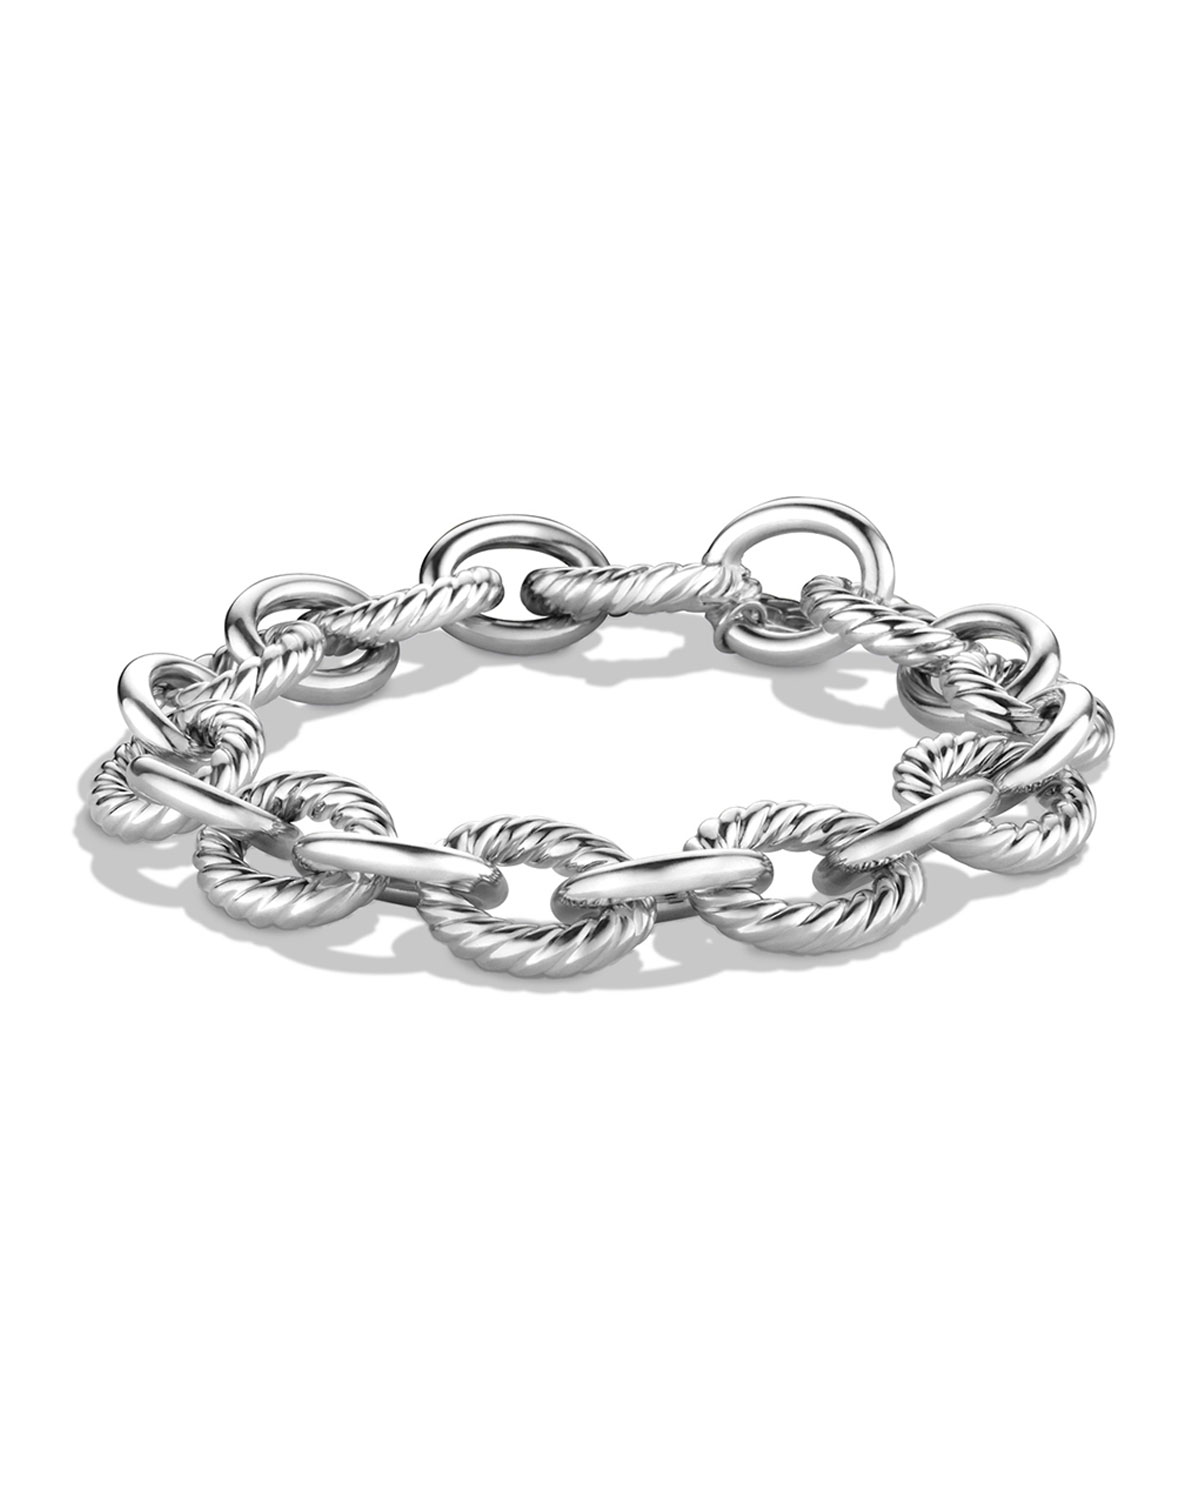 bangle of plain oval essentials sterling bangles london image silver links